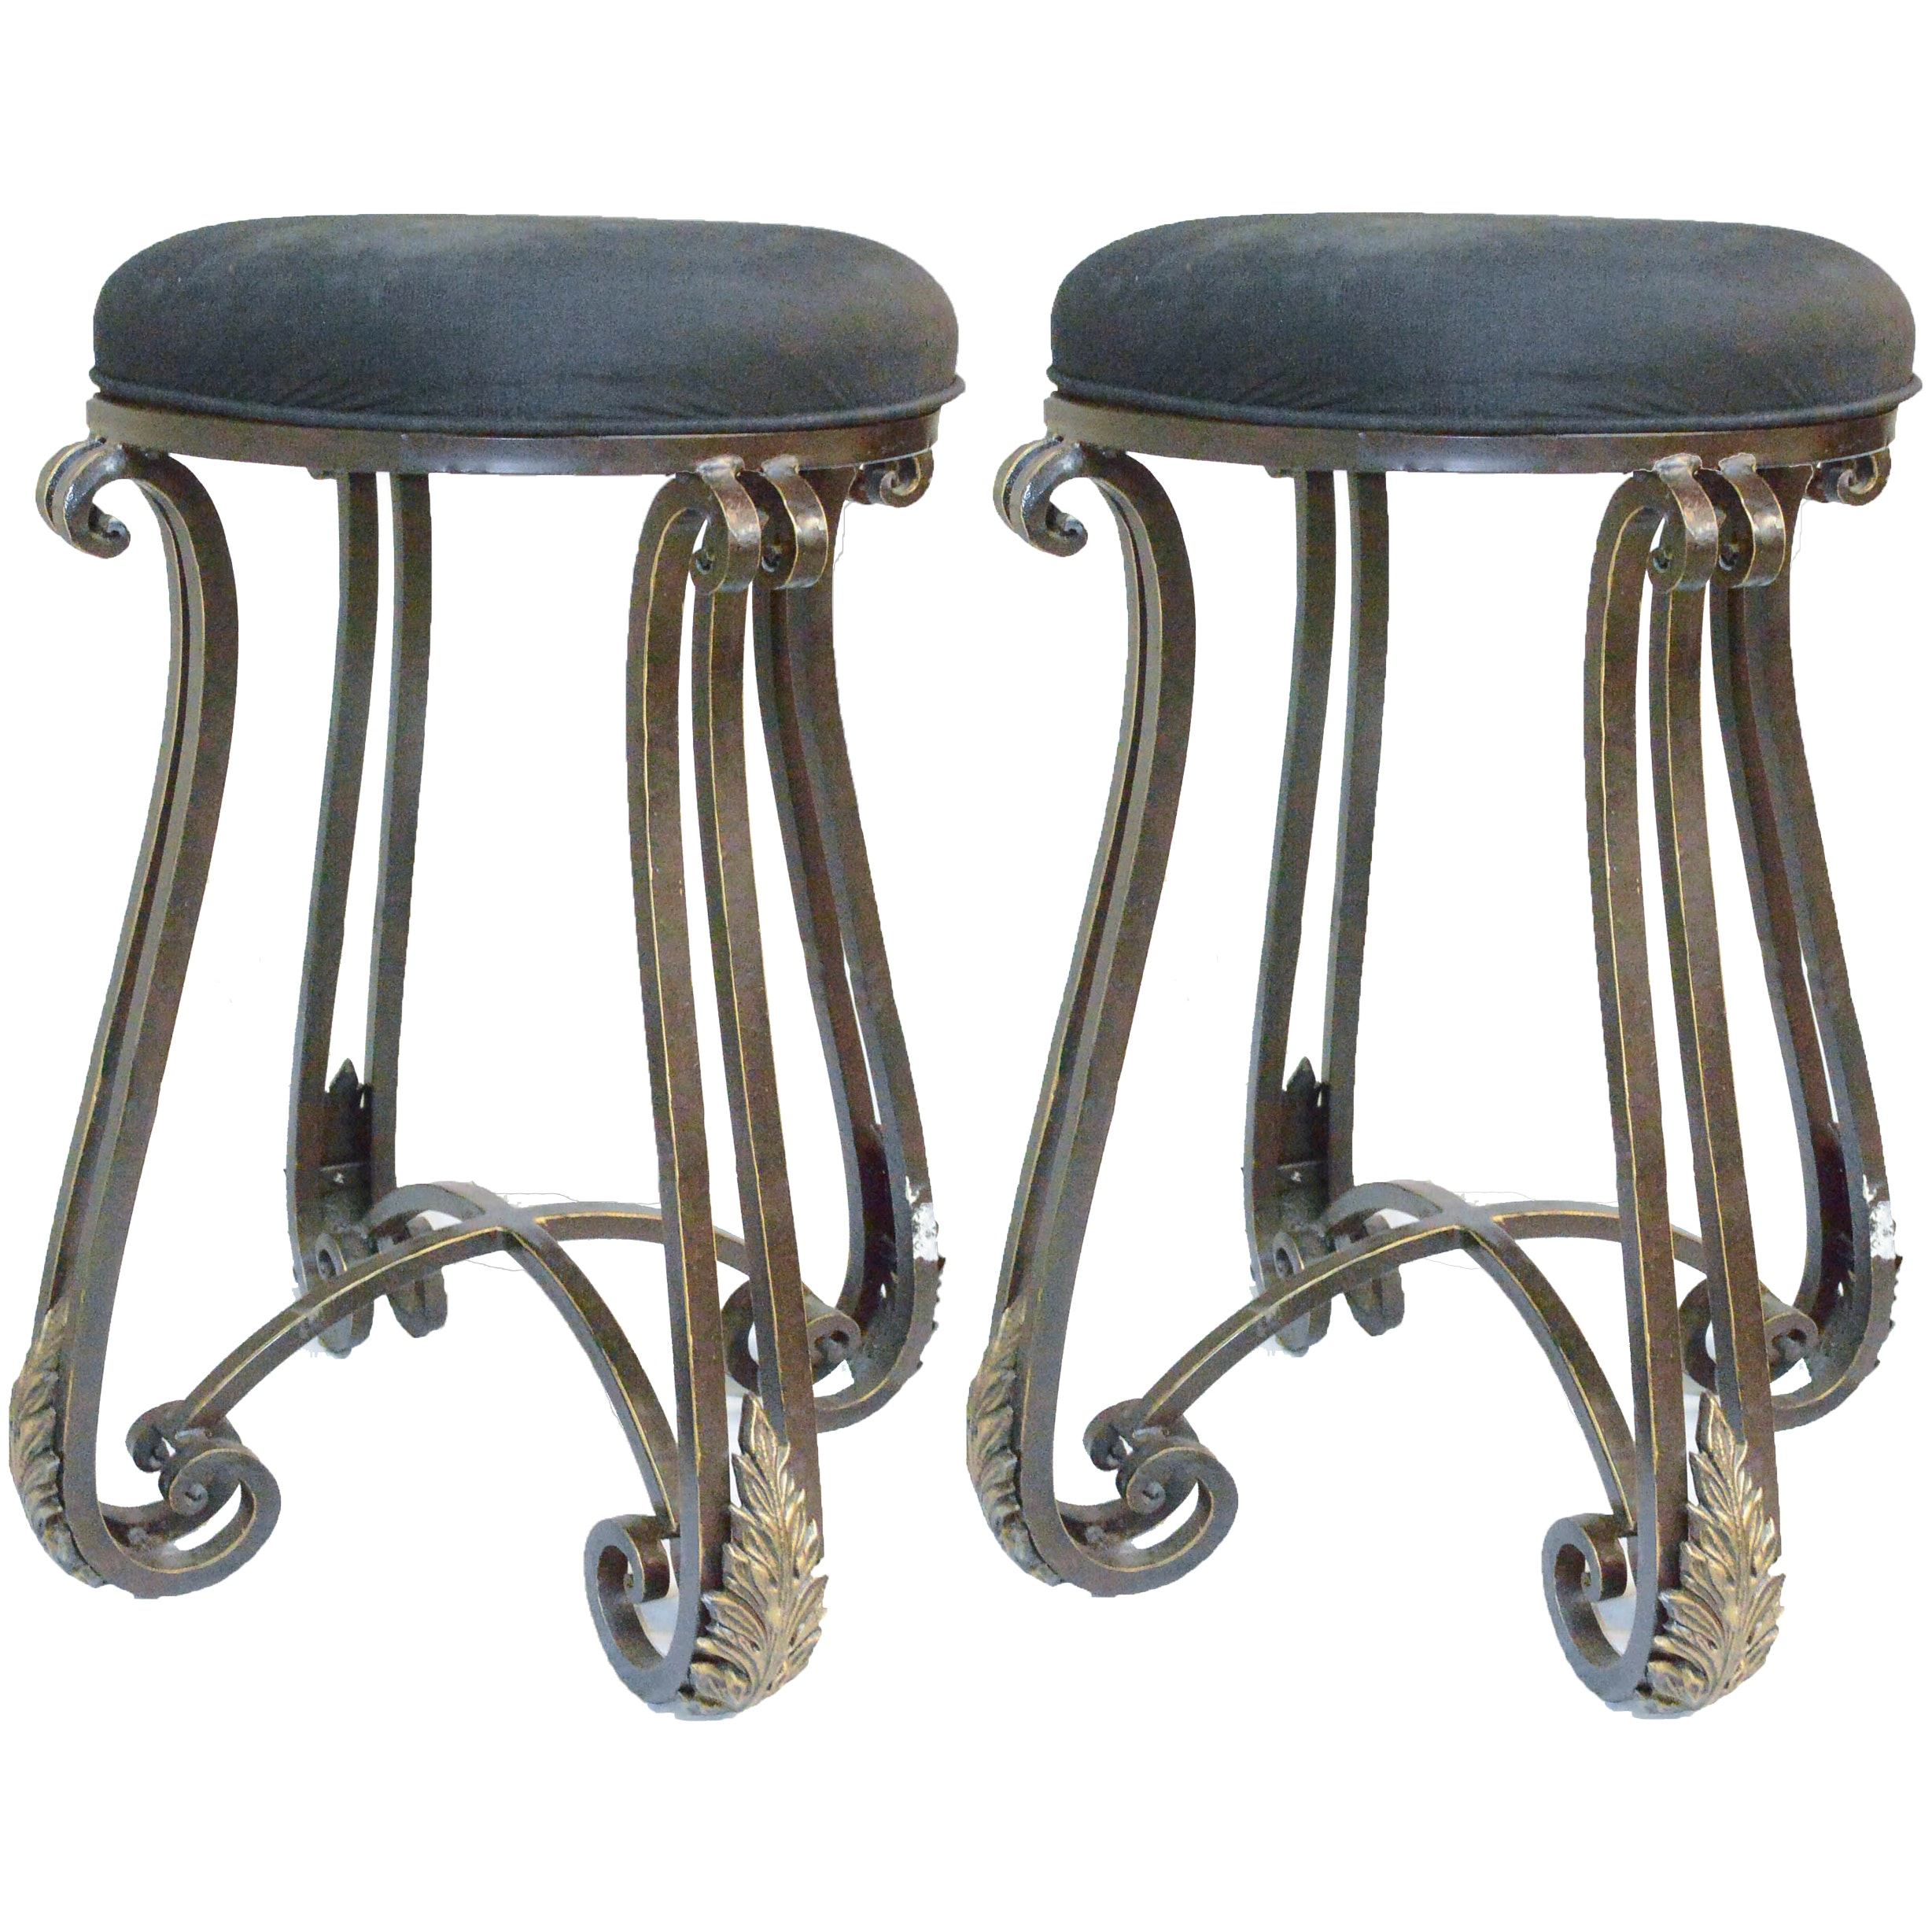 Pair of Curved Legged Cushioned Bar Stools